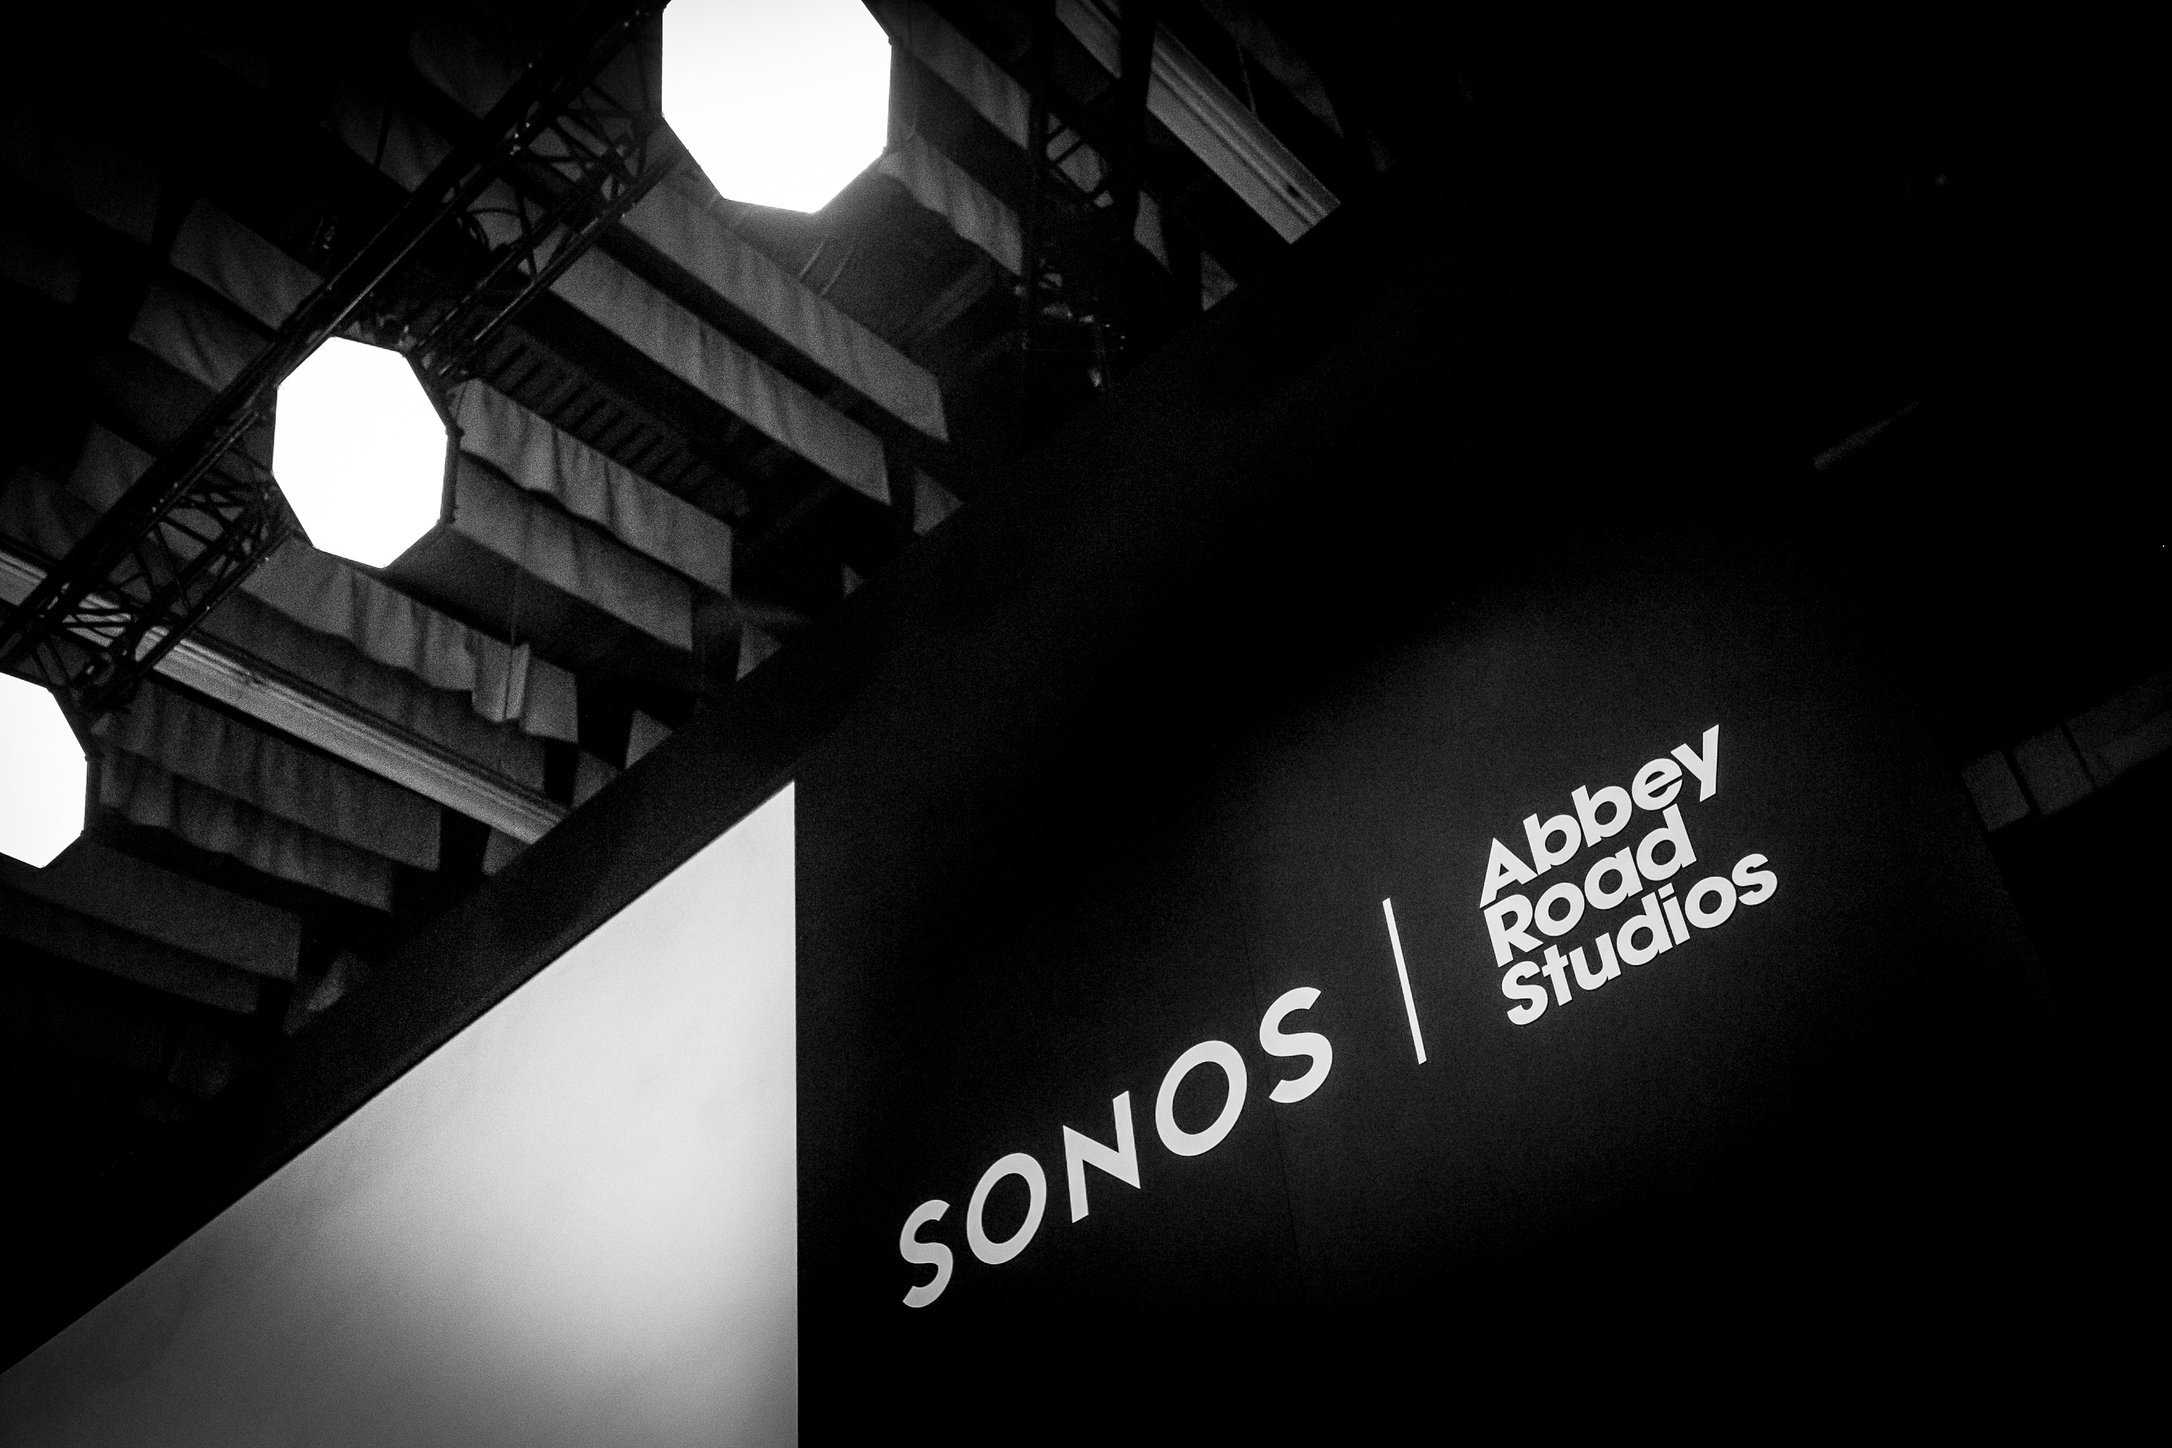 Sonos-Rescored-2532-HighRes.jpg